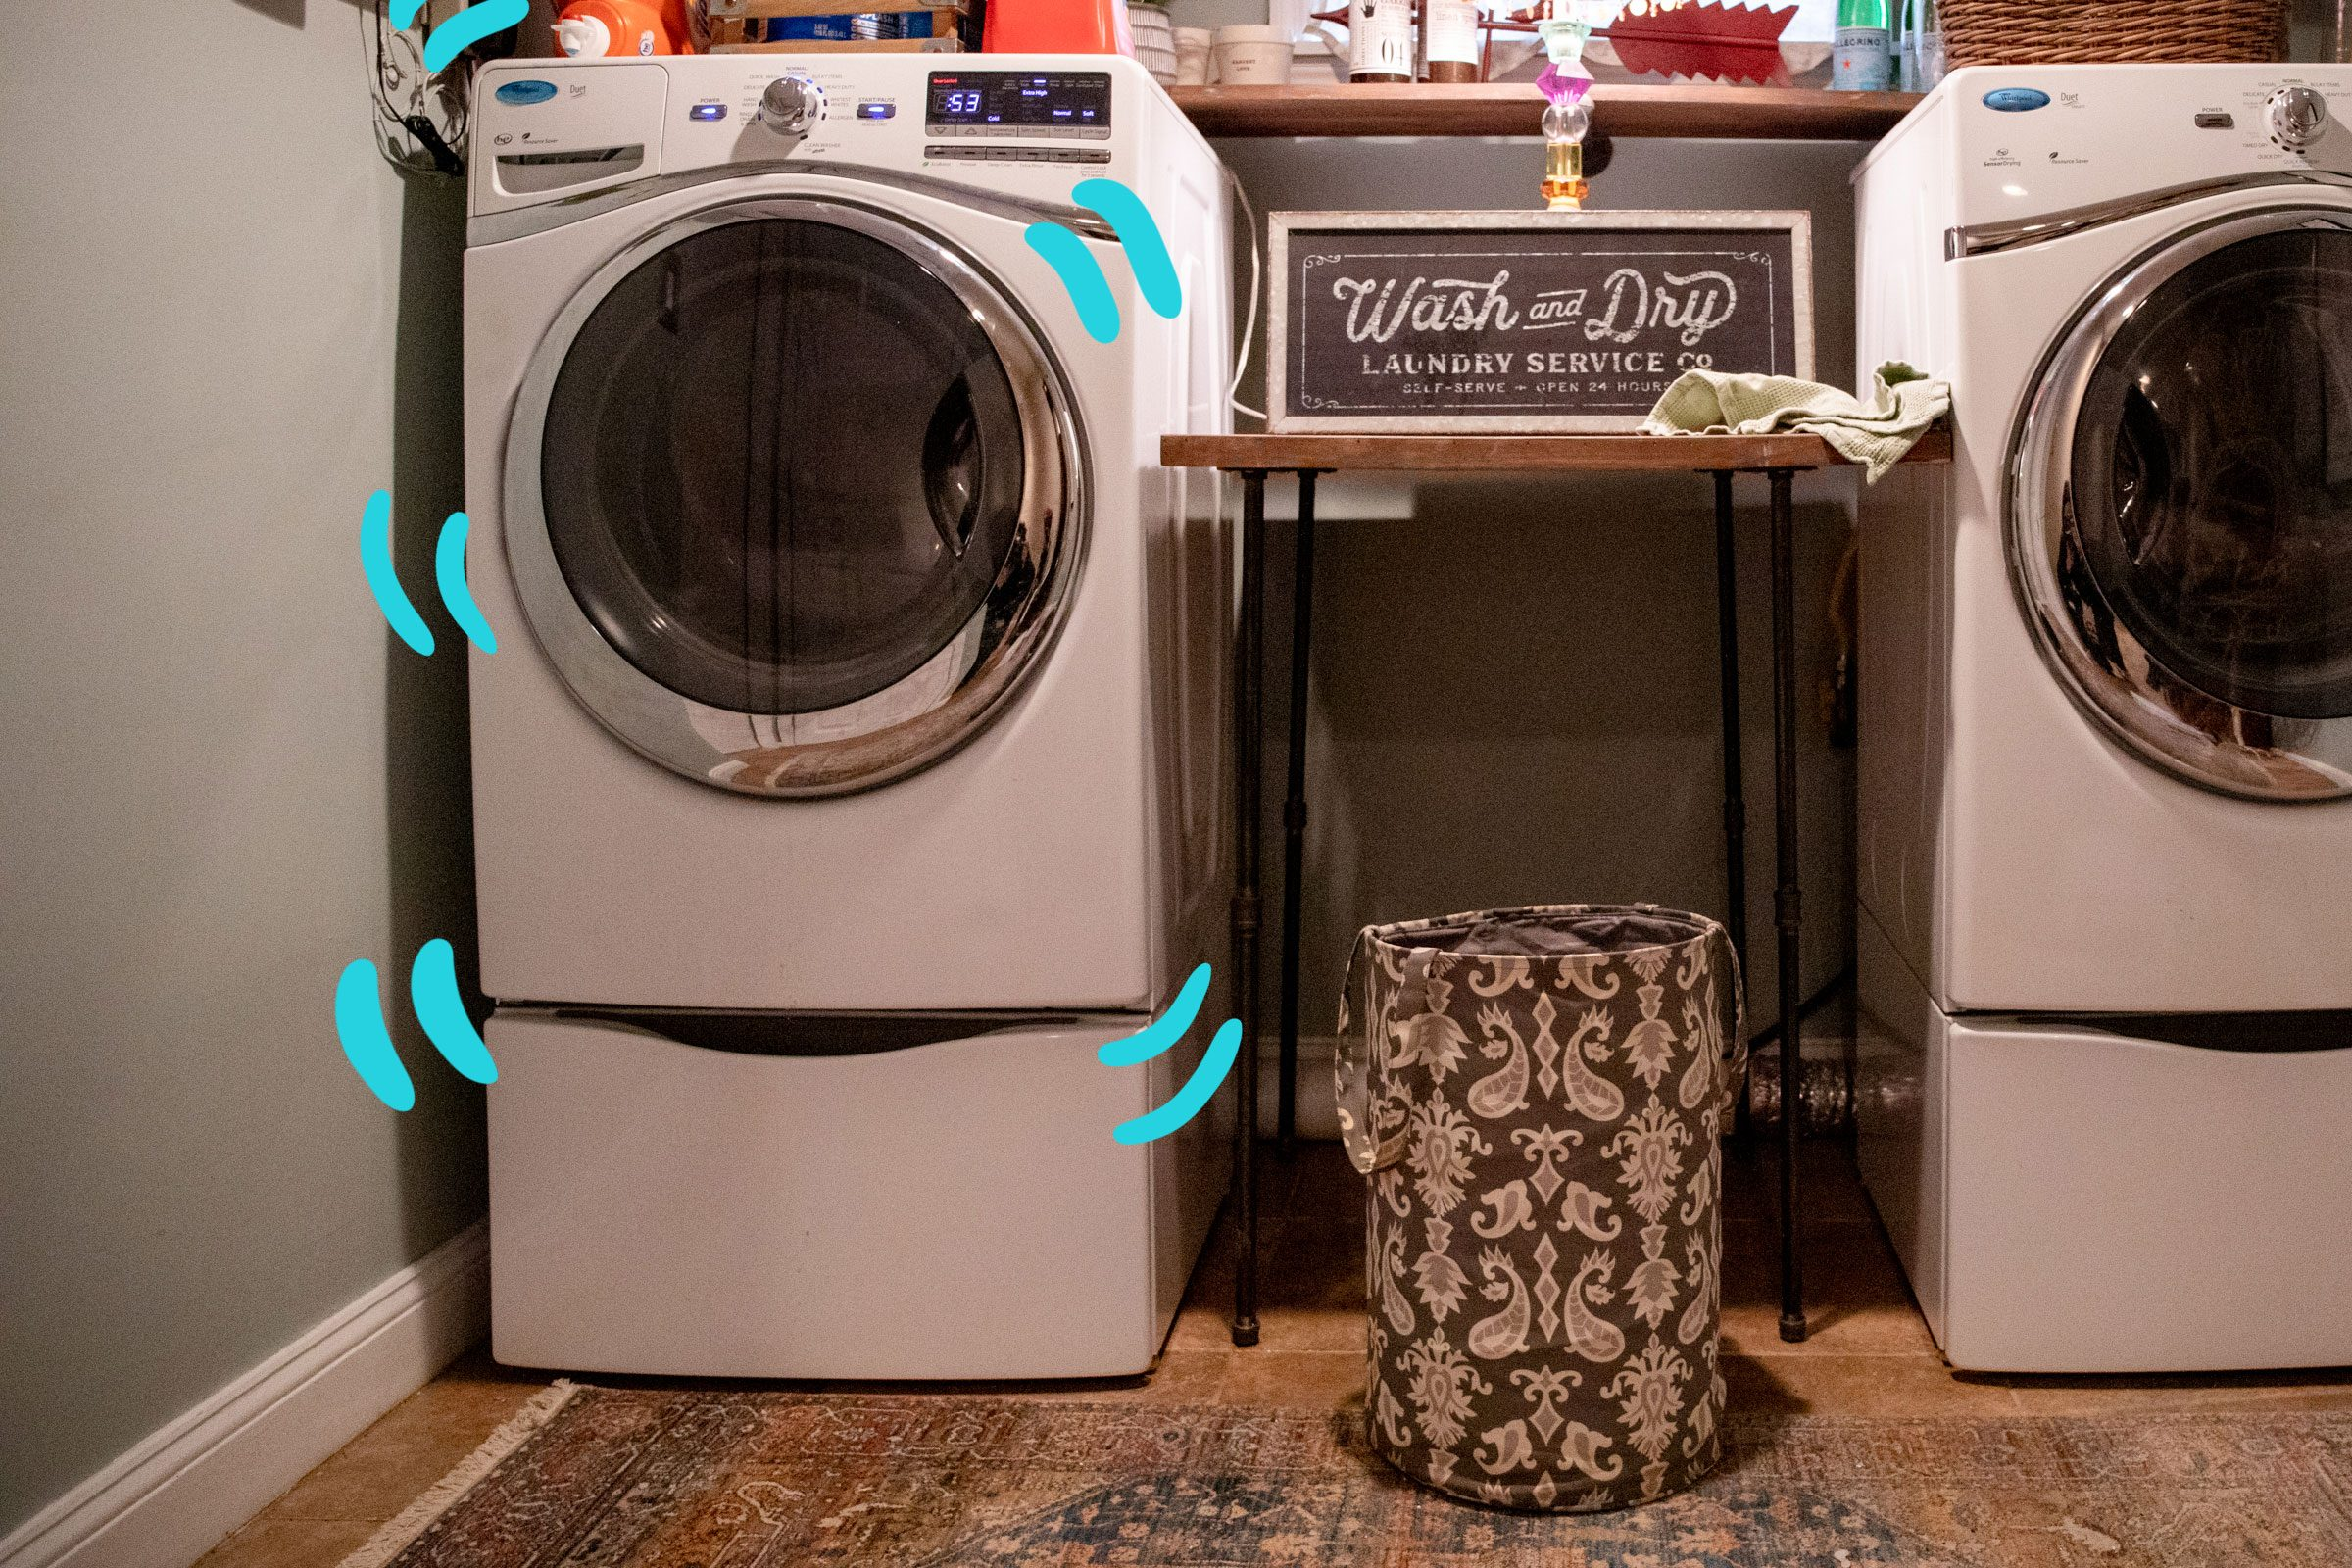 Washing machine with lines drawn to indicate shaking or vibrating